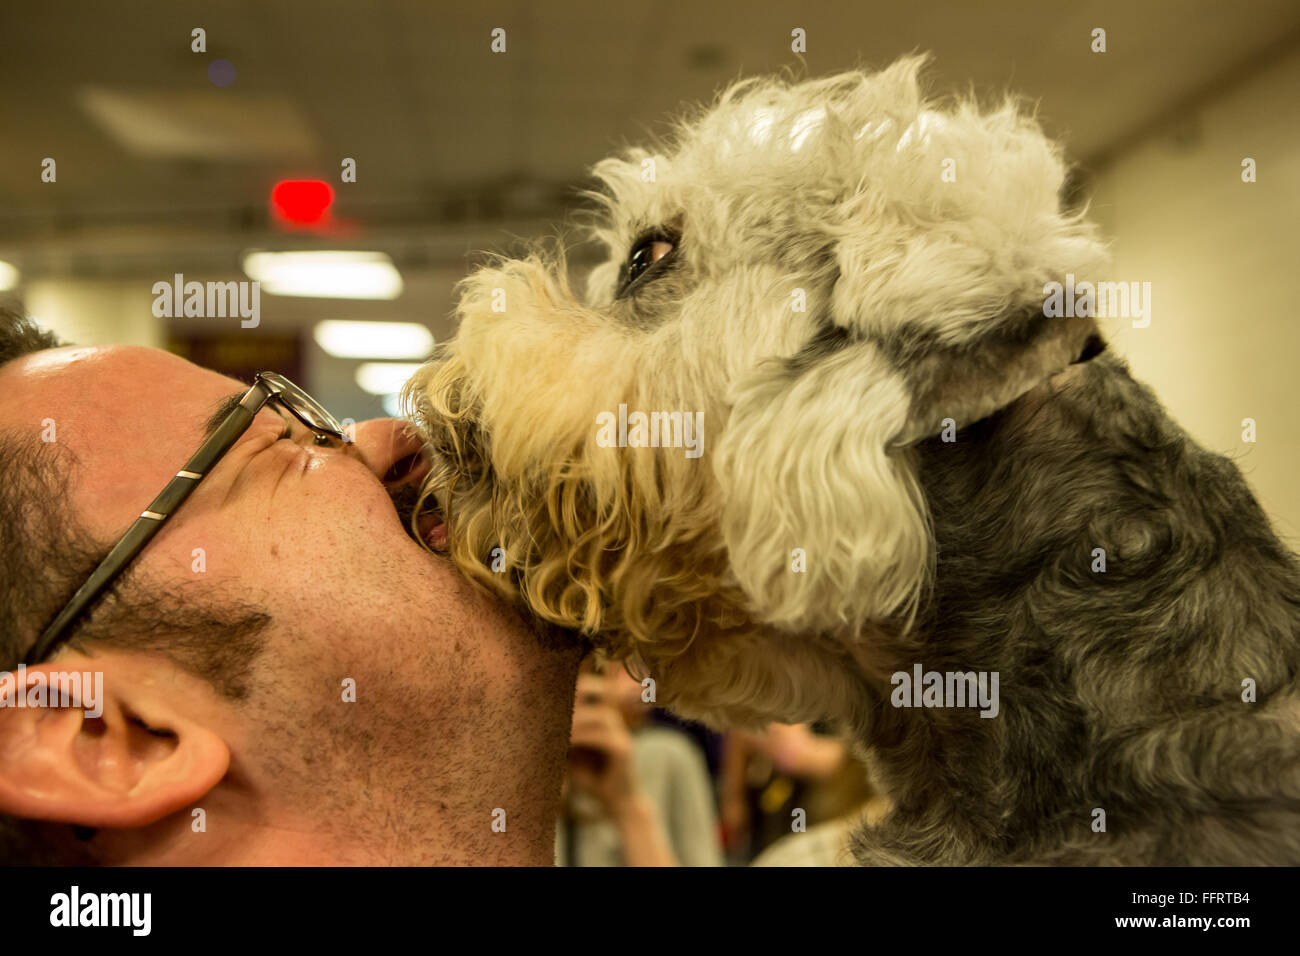 New York, USA. 16th February, 2016. Wesley, an affectionate Dandie Dinmont terrier, licks a visitor's face in the Stock Photo